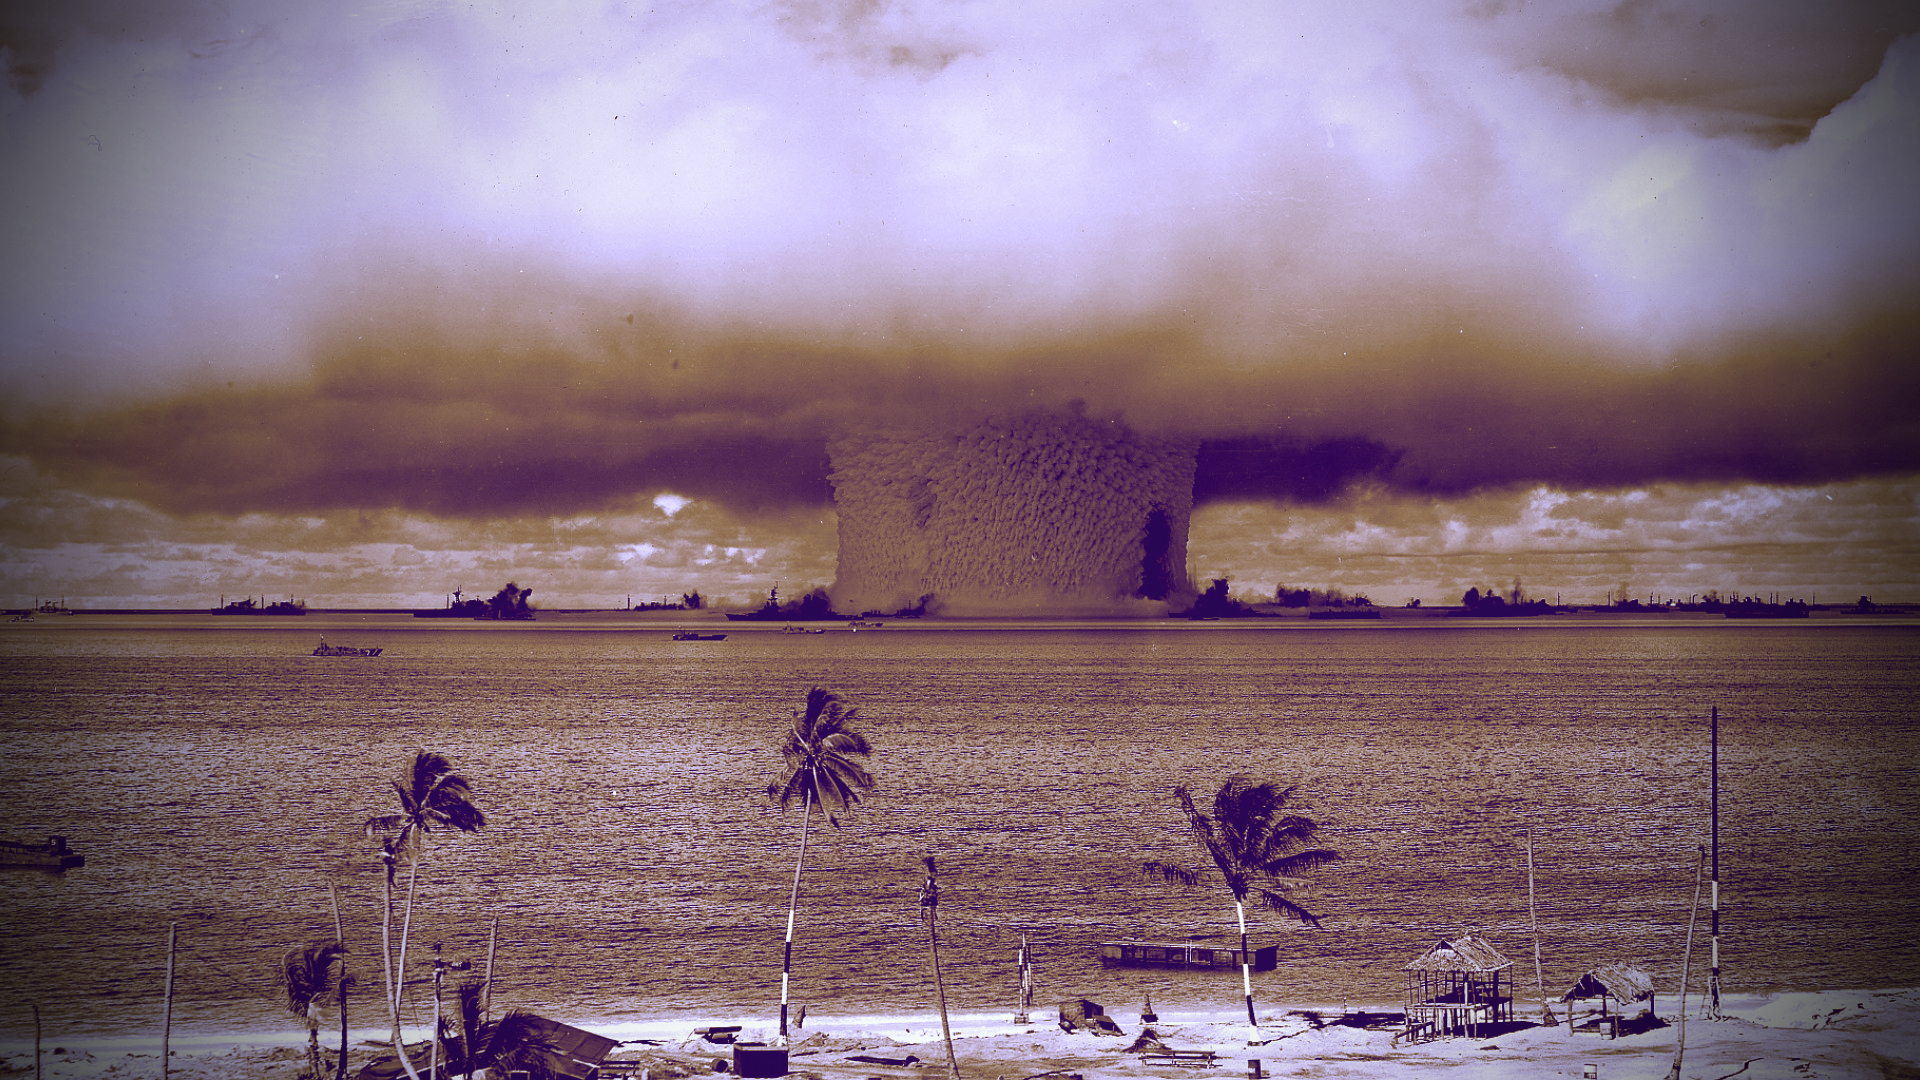 atomic explosions nuclear explosions HD Wallpaper